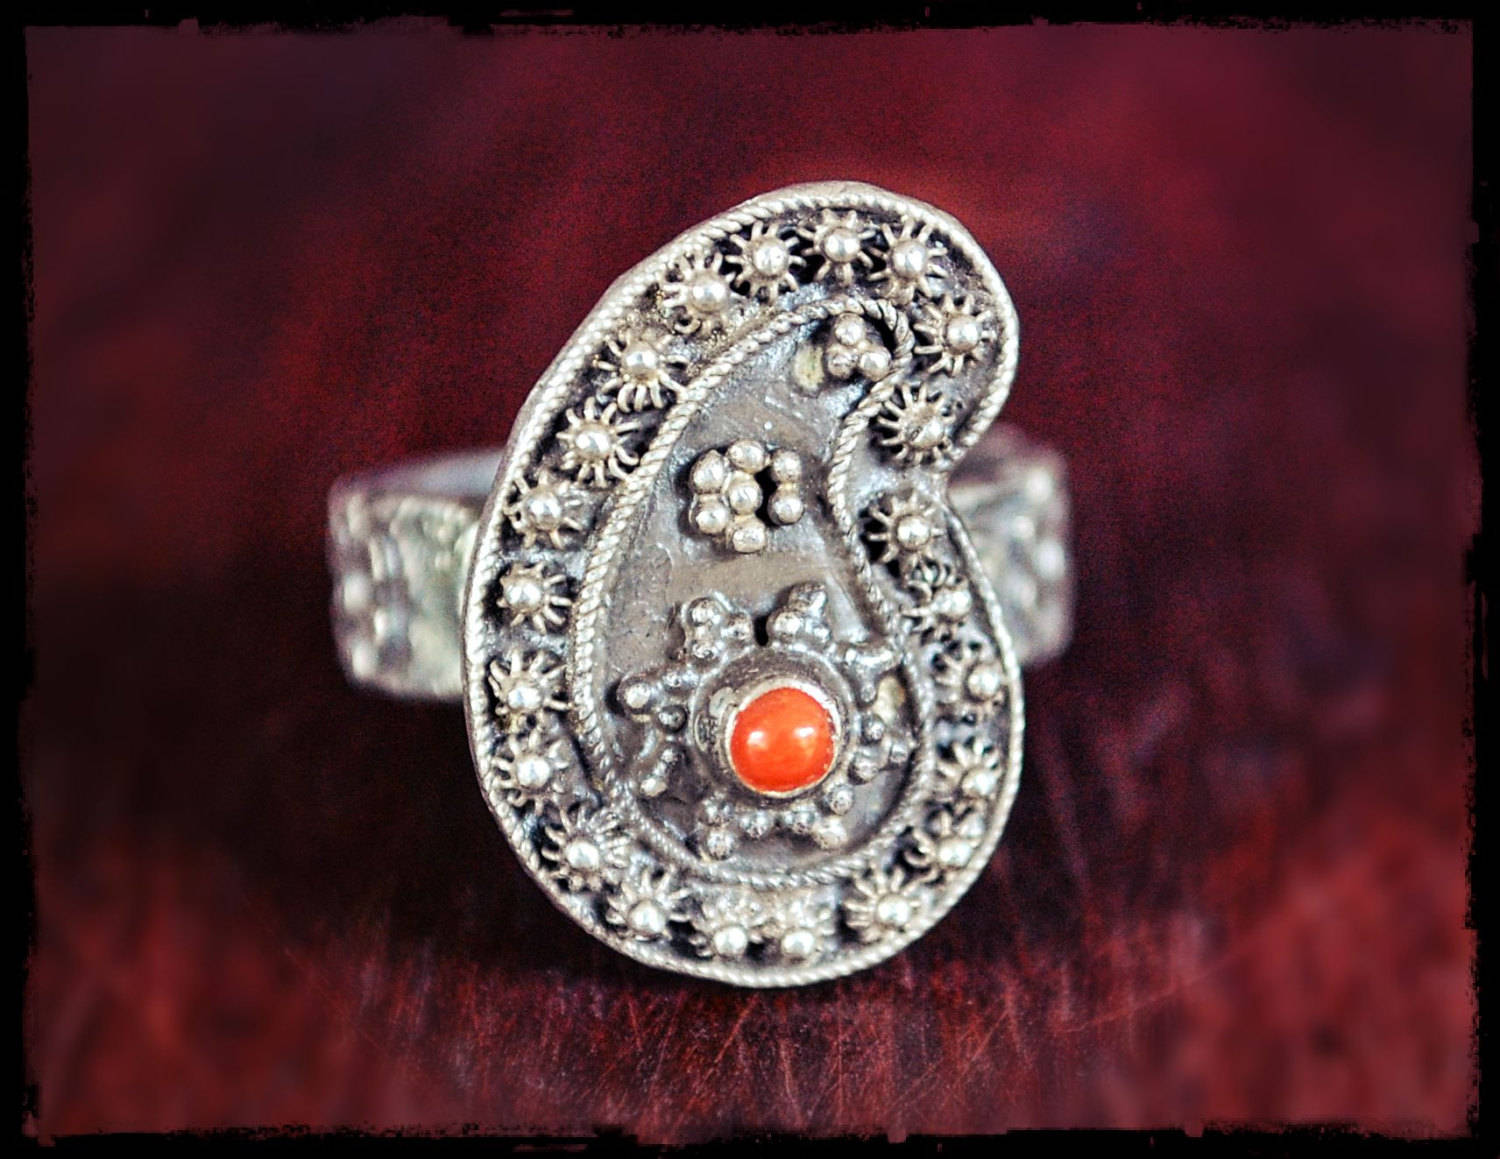 Rajasthan Coral Paisley Ring - Size 7.5